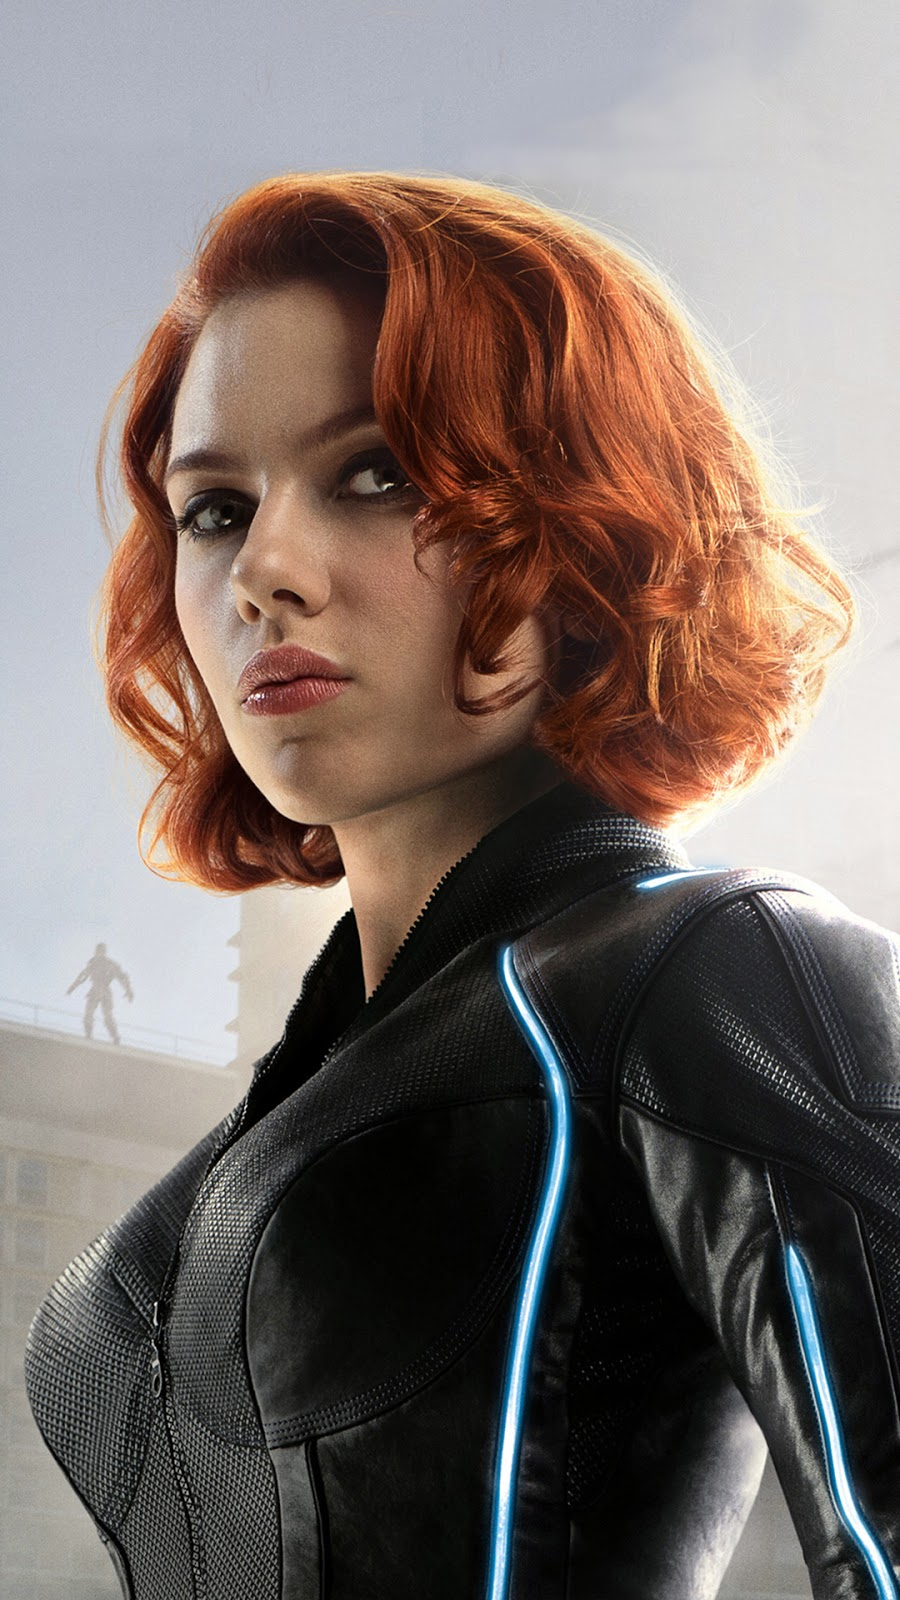 Black Widow Mobile Wallpaper Age of Ultorn.